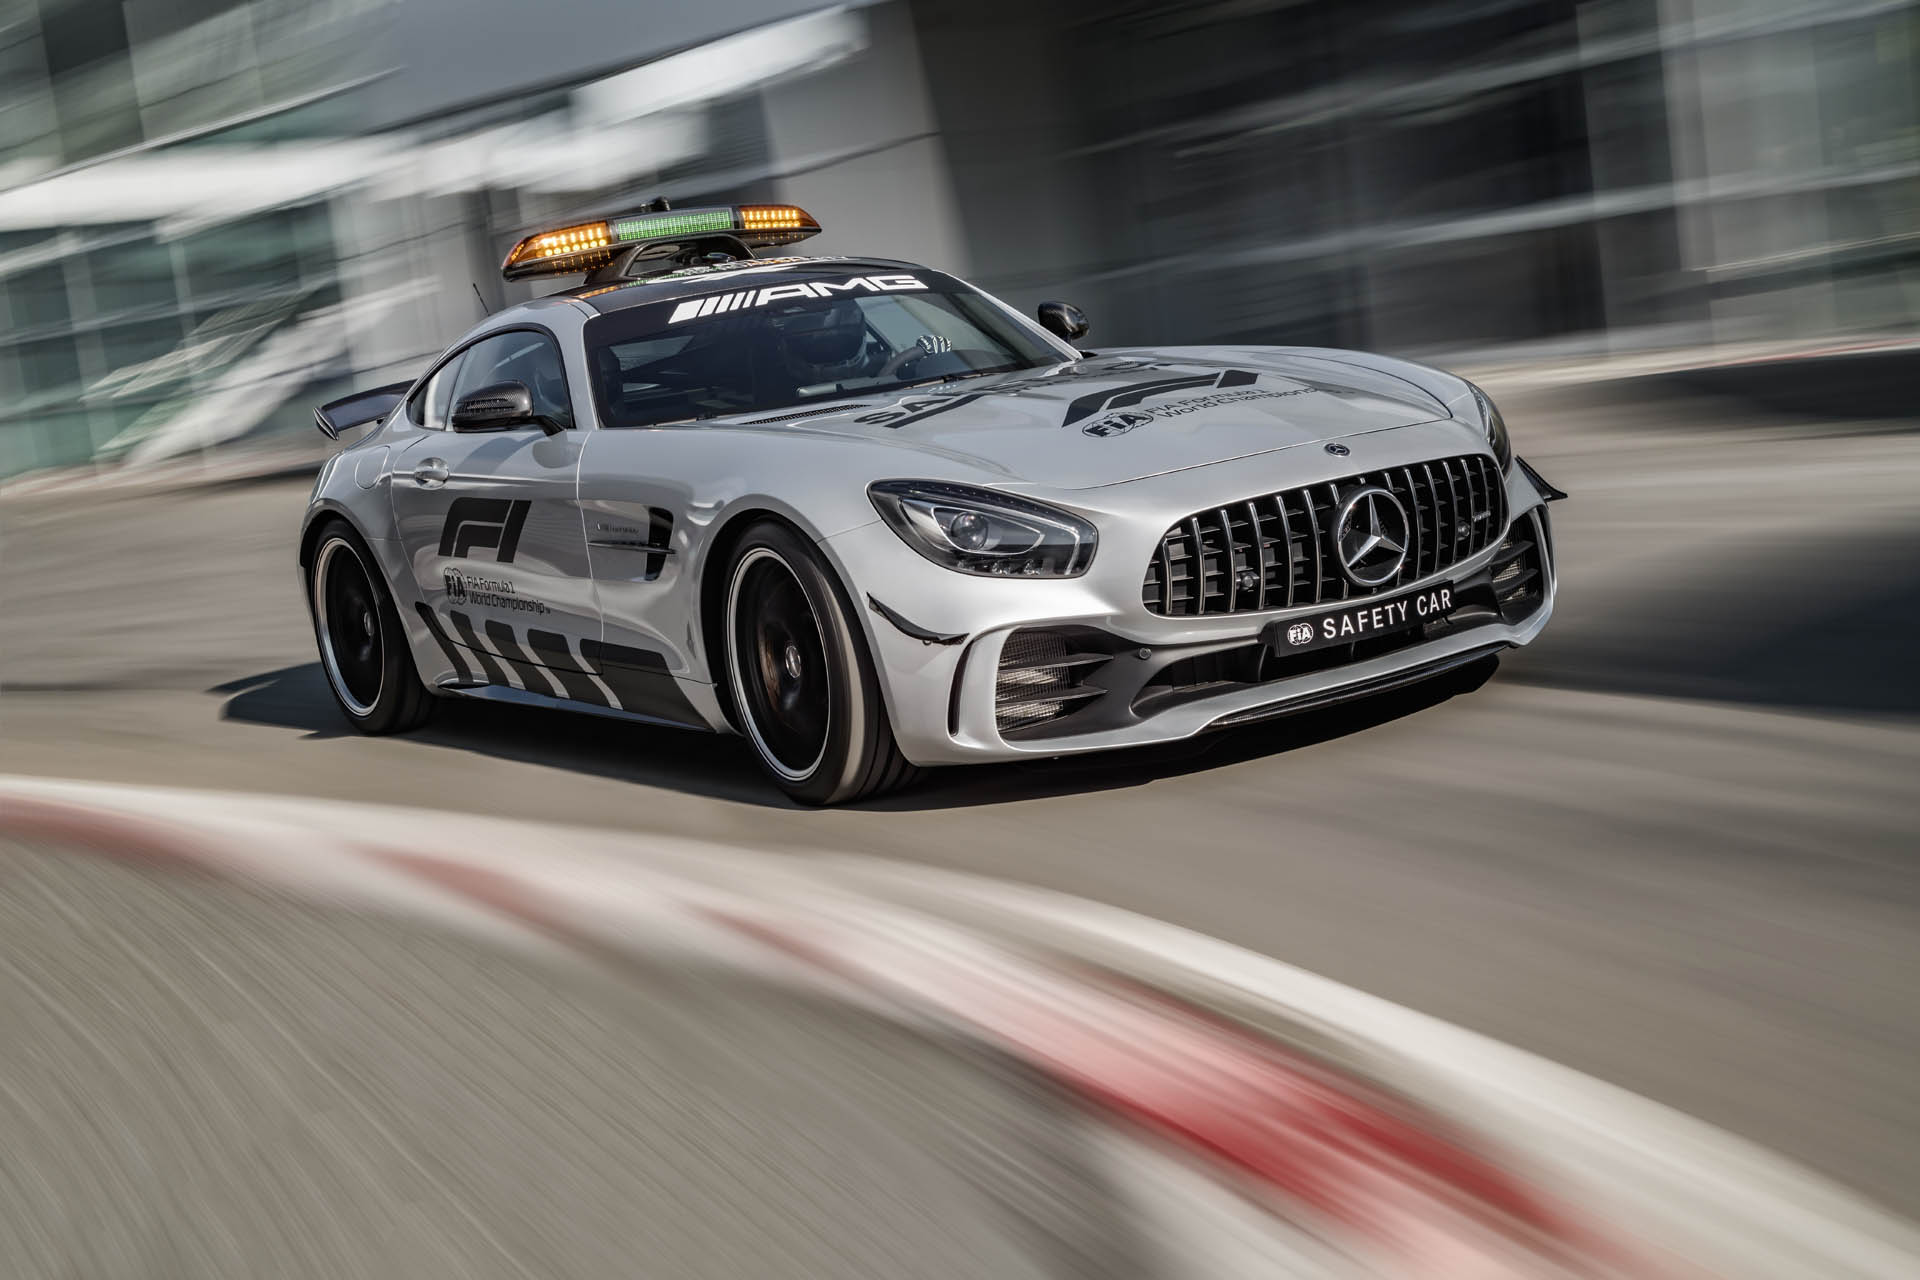 mercedes-amg-gt-r-f1-safety-car-01.jpg